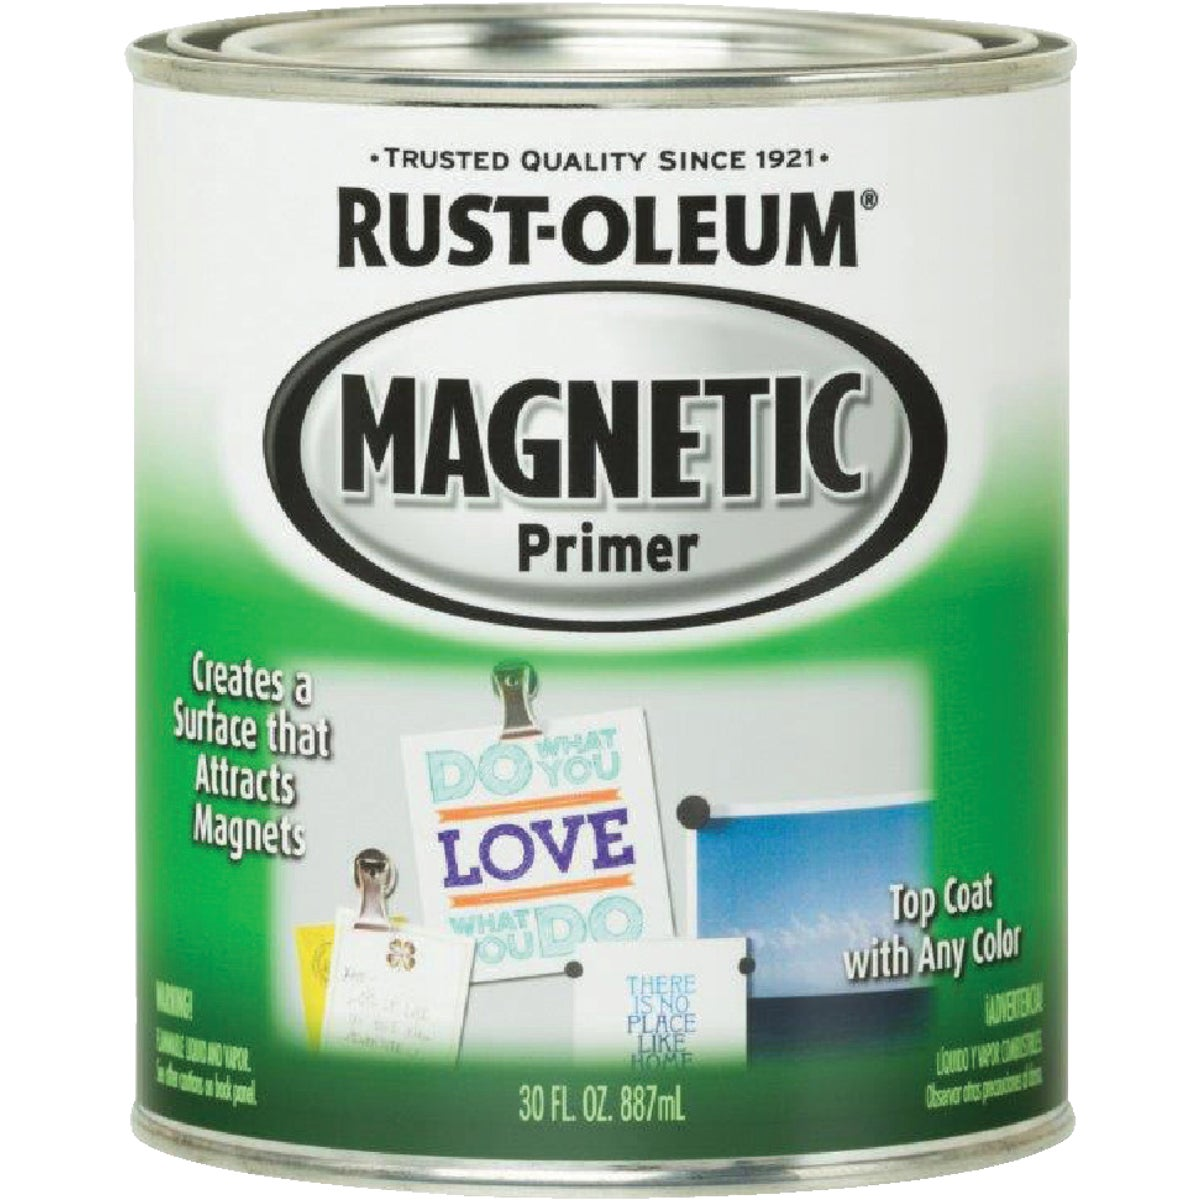 MAGNETIC PRIMER - 247596 by Rustoleum